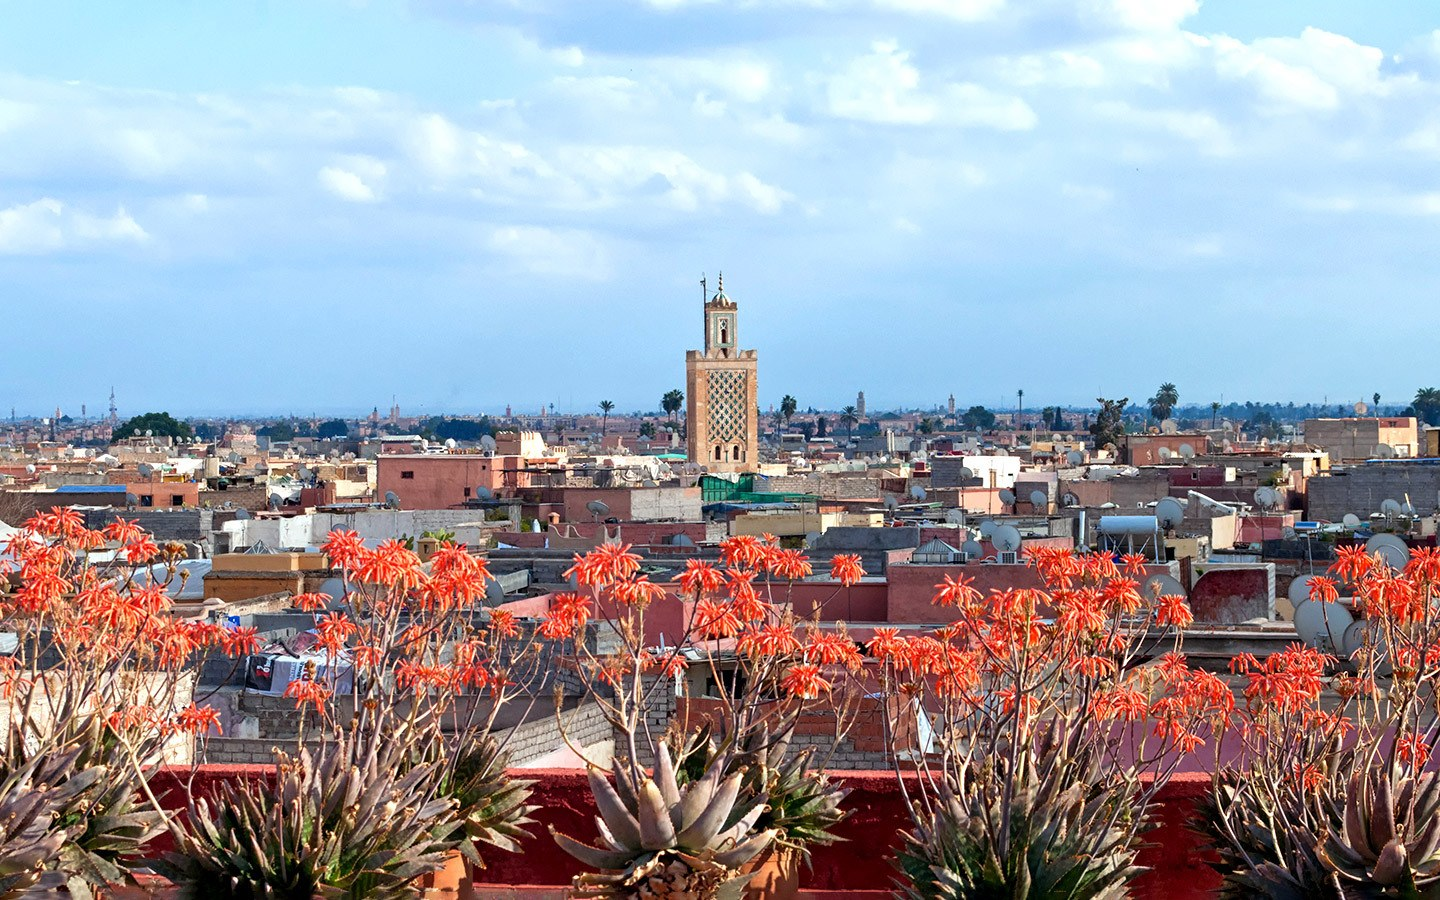 What does it cost? 6 days in Morocco budget breakdown